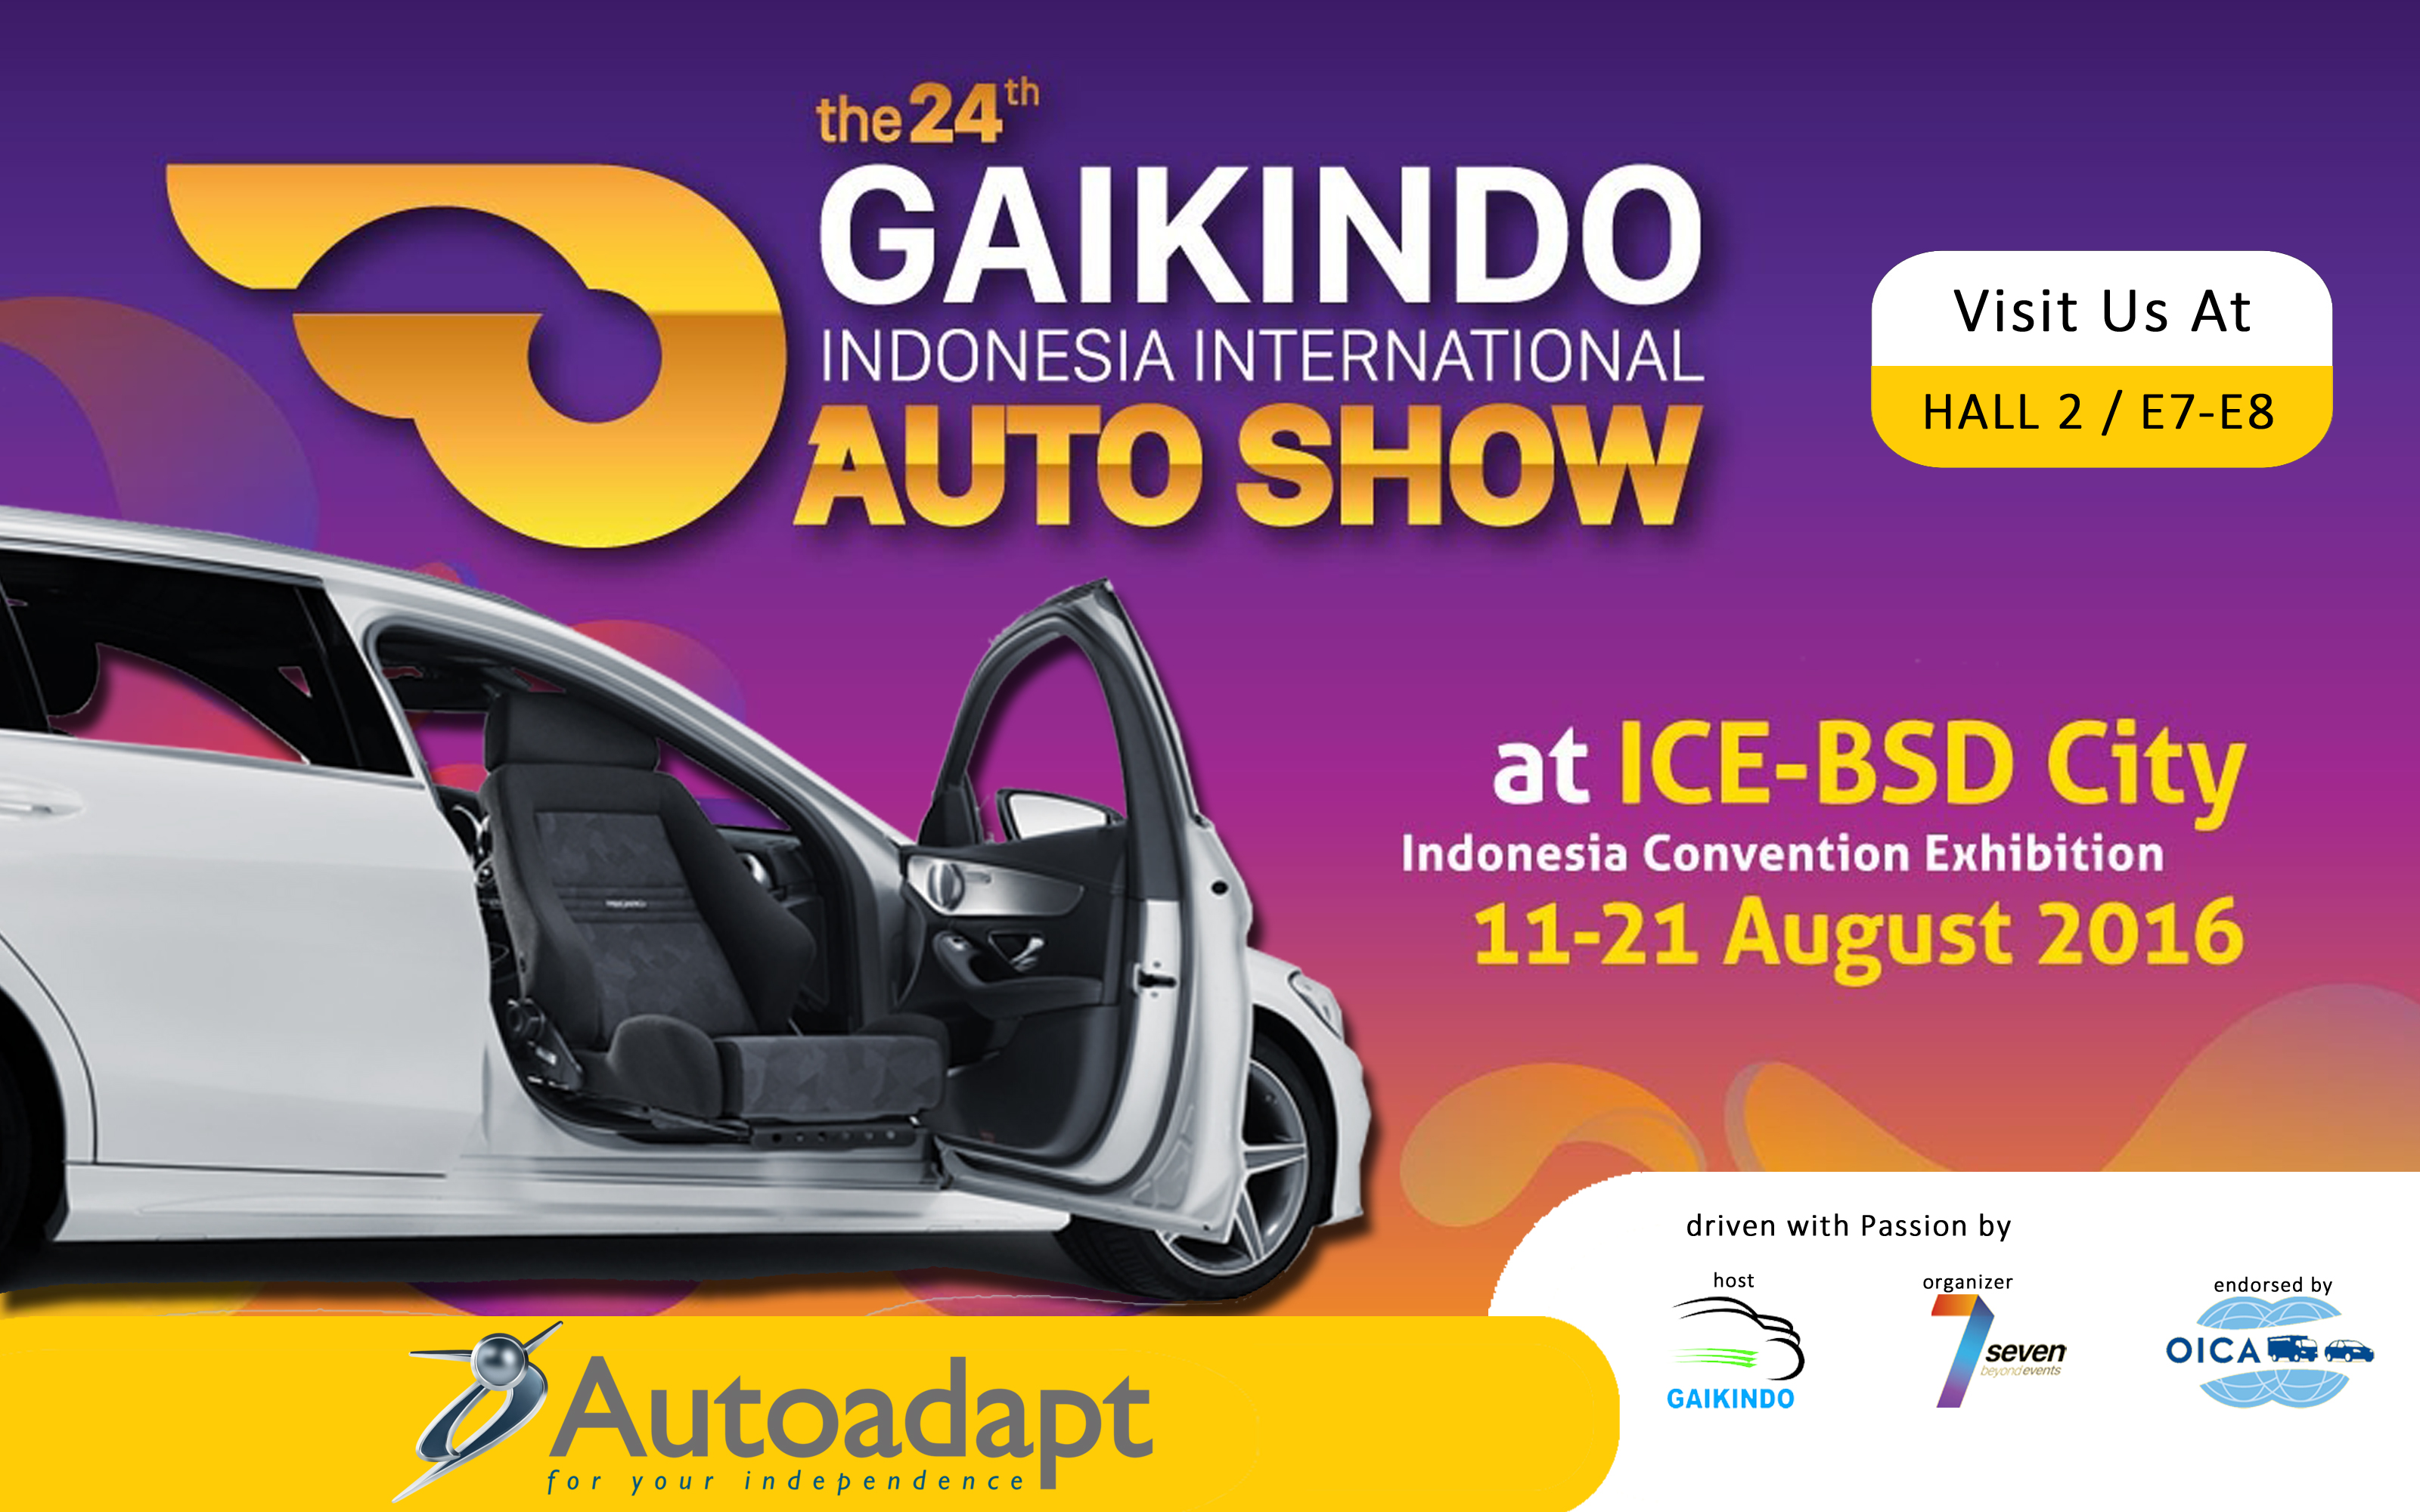 Autoadapt Will Launch Turny Low Vehicle At GIIAS 2016 In Indonesia